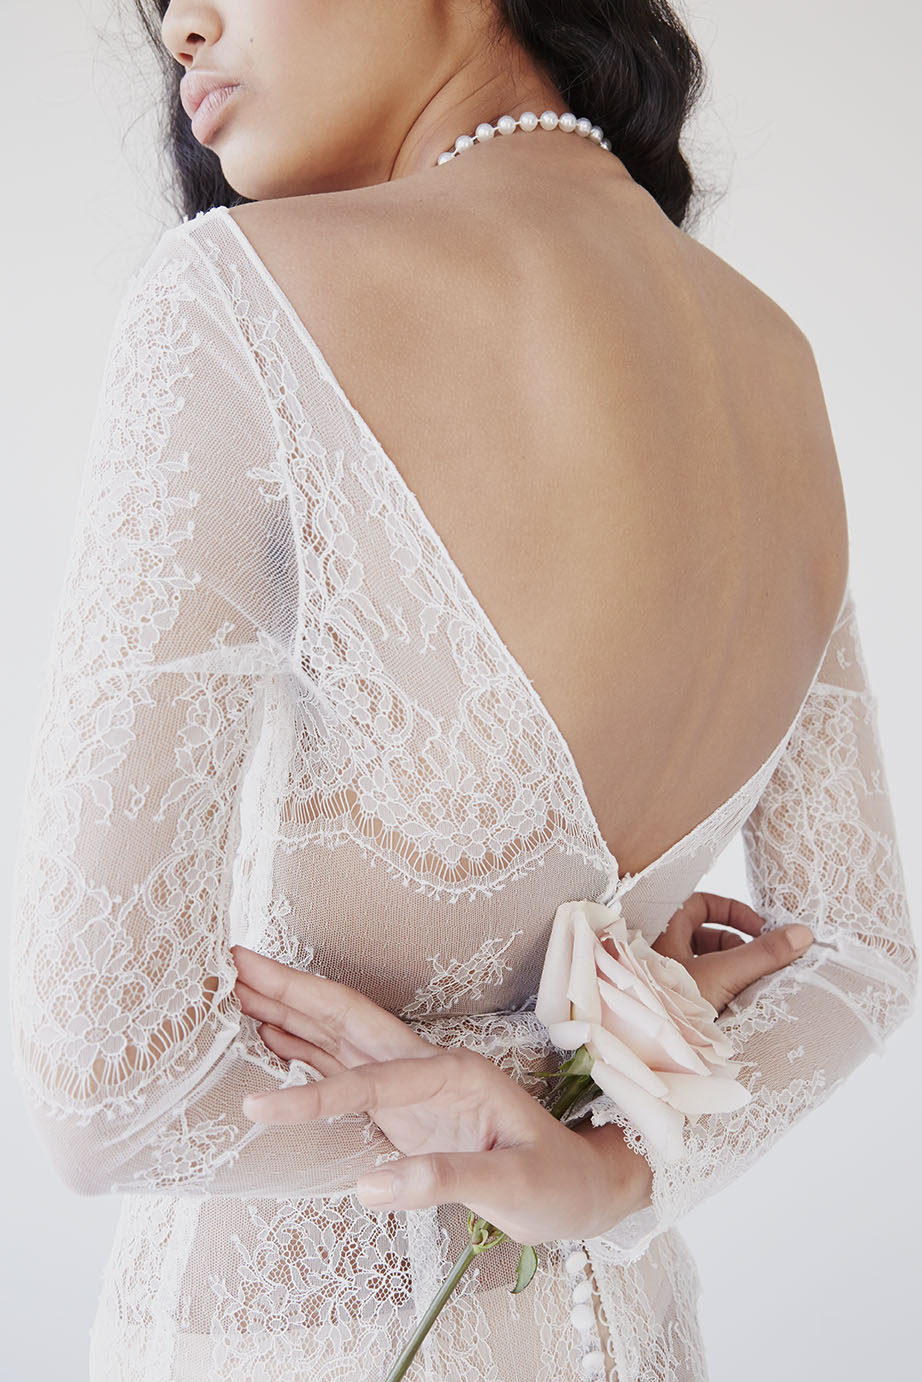 Anna Campbell Milla Dress | Vintage-Inspired Long Sleeve Lace Wedding Dress | Image via Together Journal